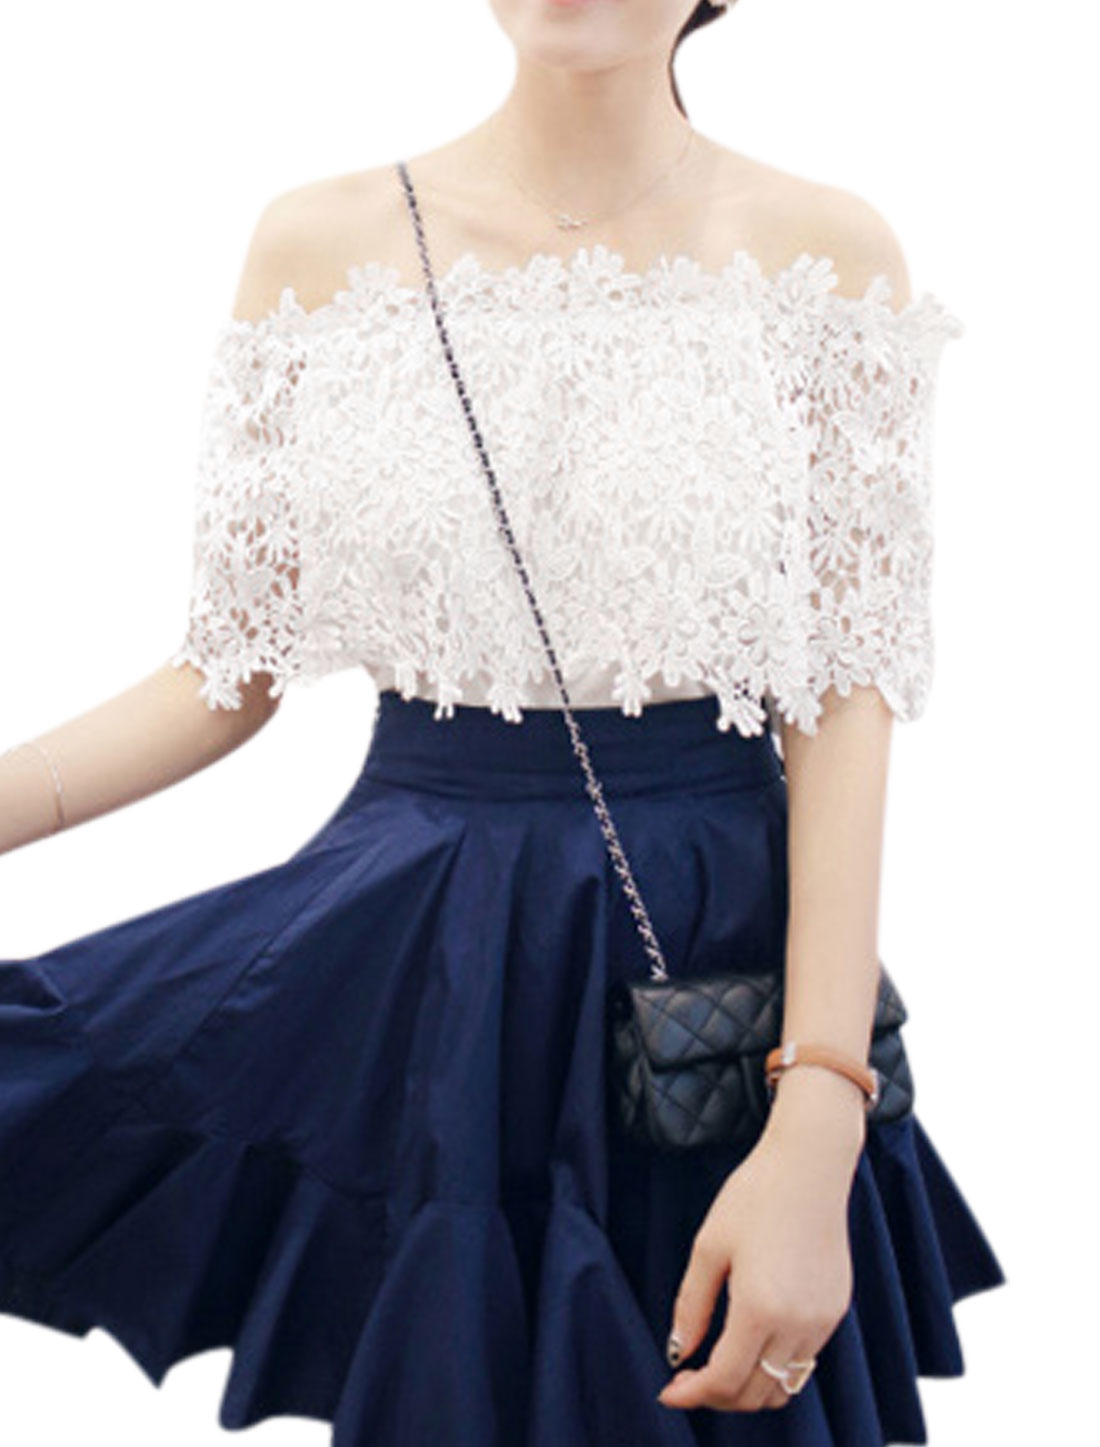 Women Sleeveless Off Shoulder Layered Elastic Trim Casual Top White S